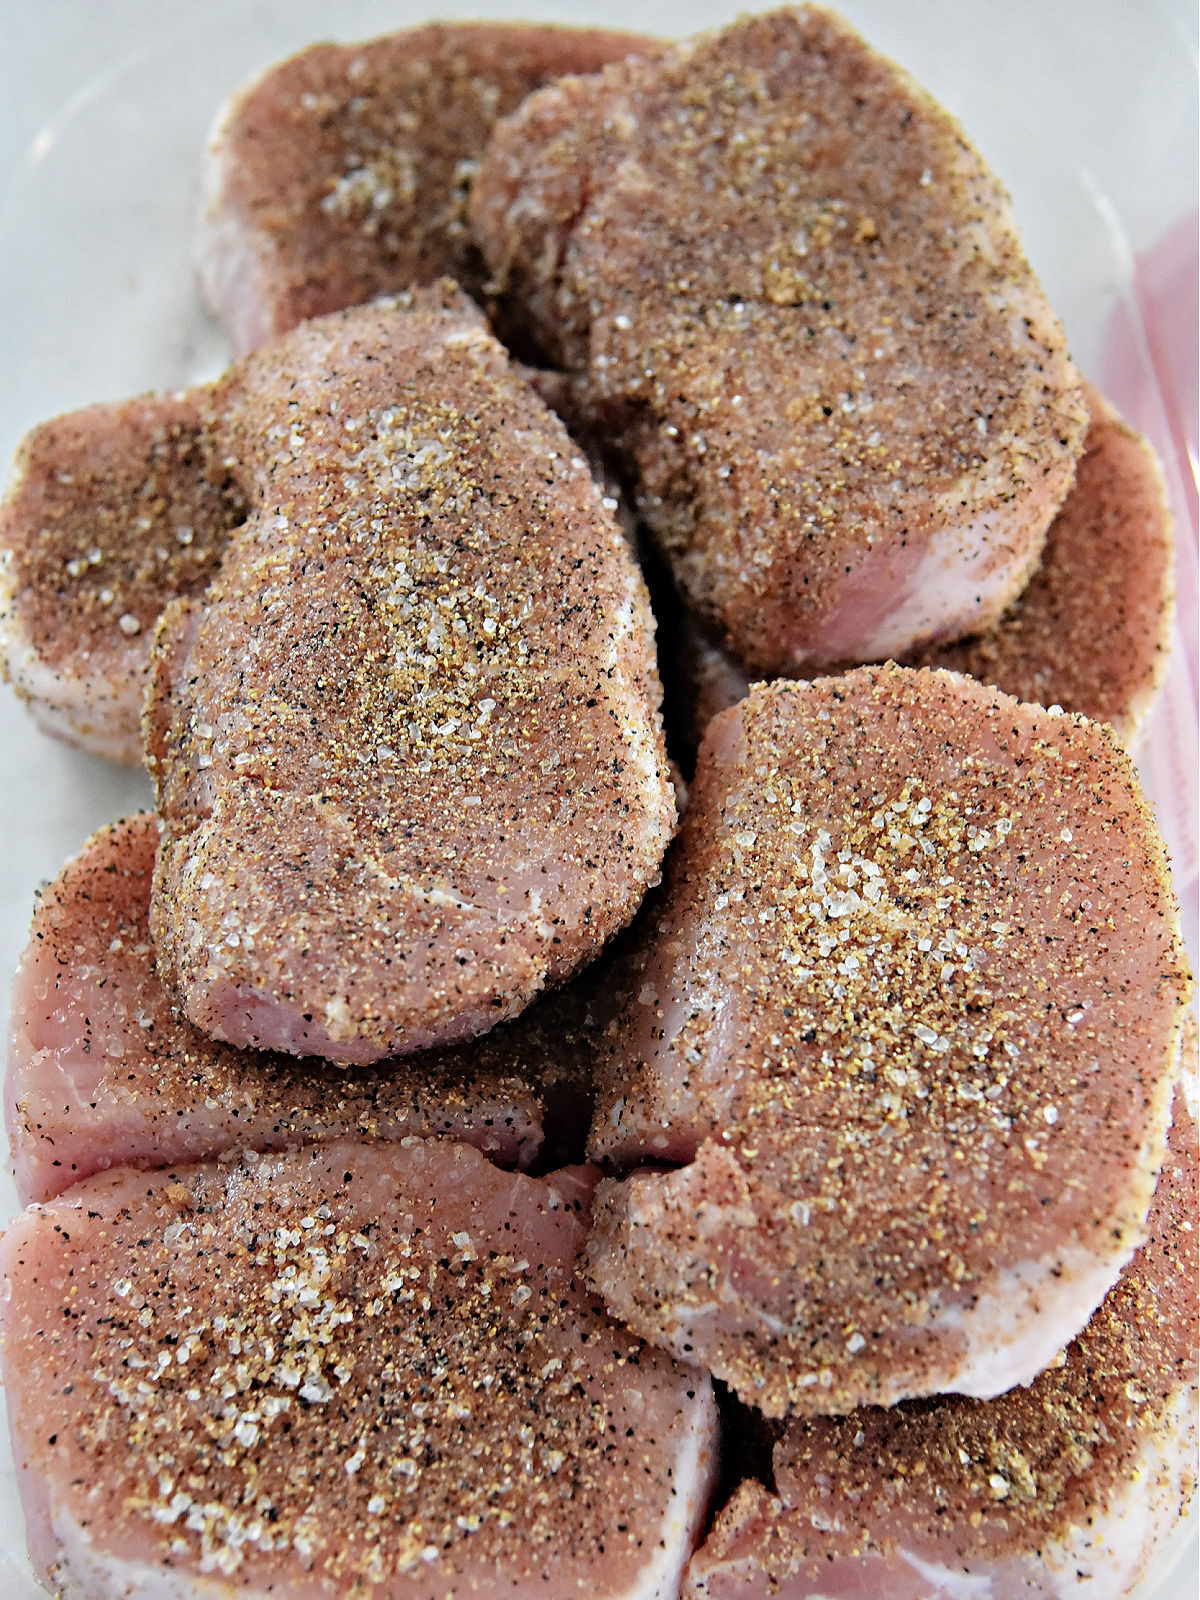 Raw pork chops covered in seasoning blend in a plastic container.